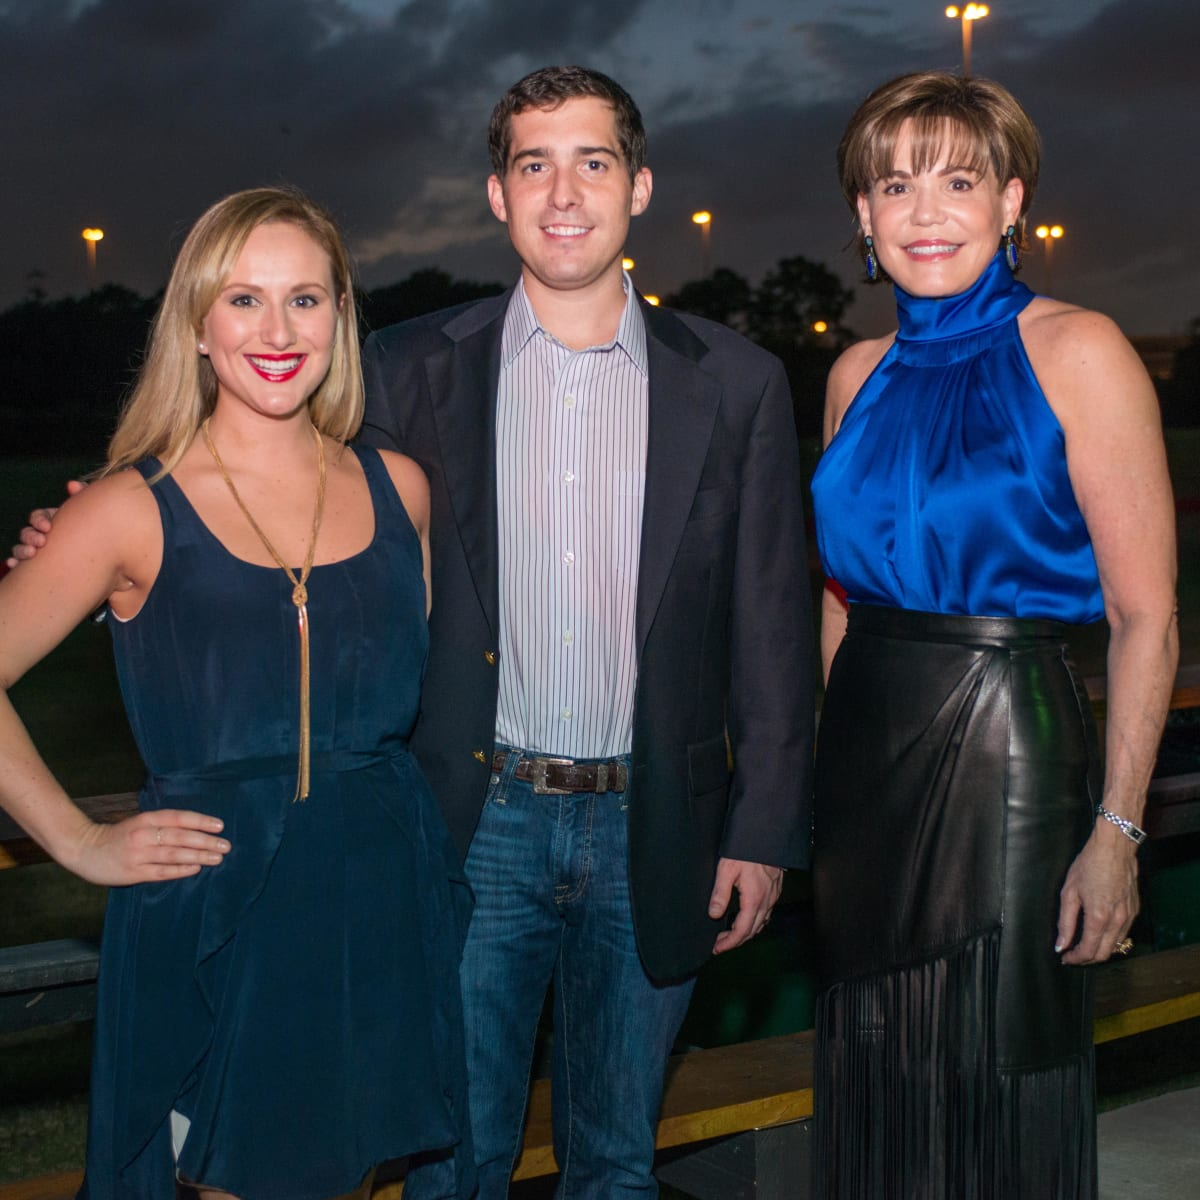 News, Shelby, Nature Conservancy gala, Oct. 2015, Sydney Vanderhider, Michael Vanderhider, Hallie Vanderhider